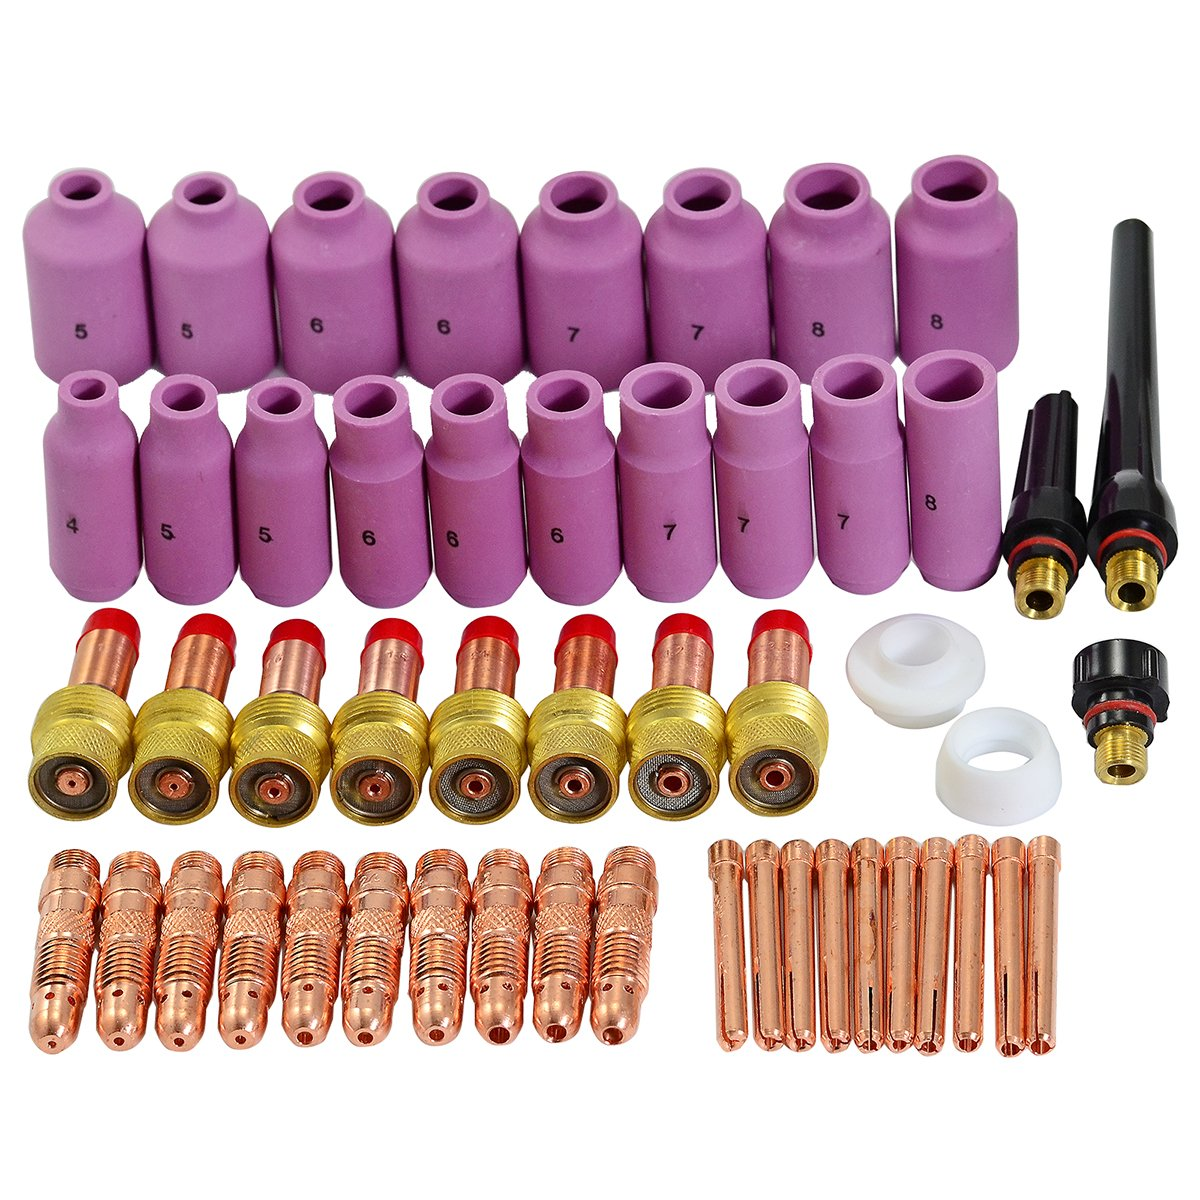 TIG Gas Lens Collet Body Consumables Kit Fit QQ300 PTA DB SR WP 17 18 26 TIG Welding Torch 51pcs